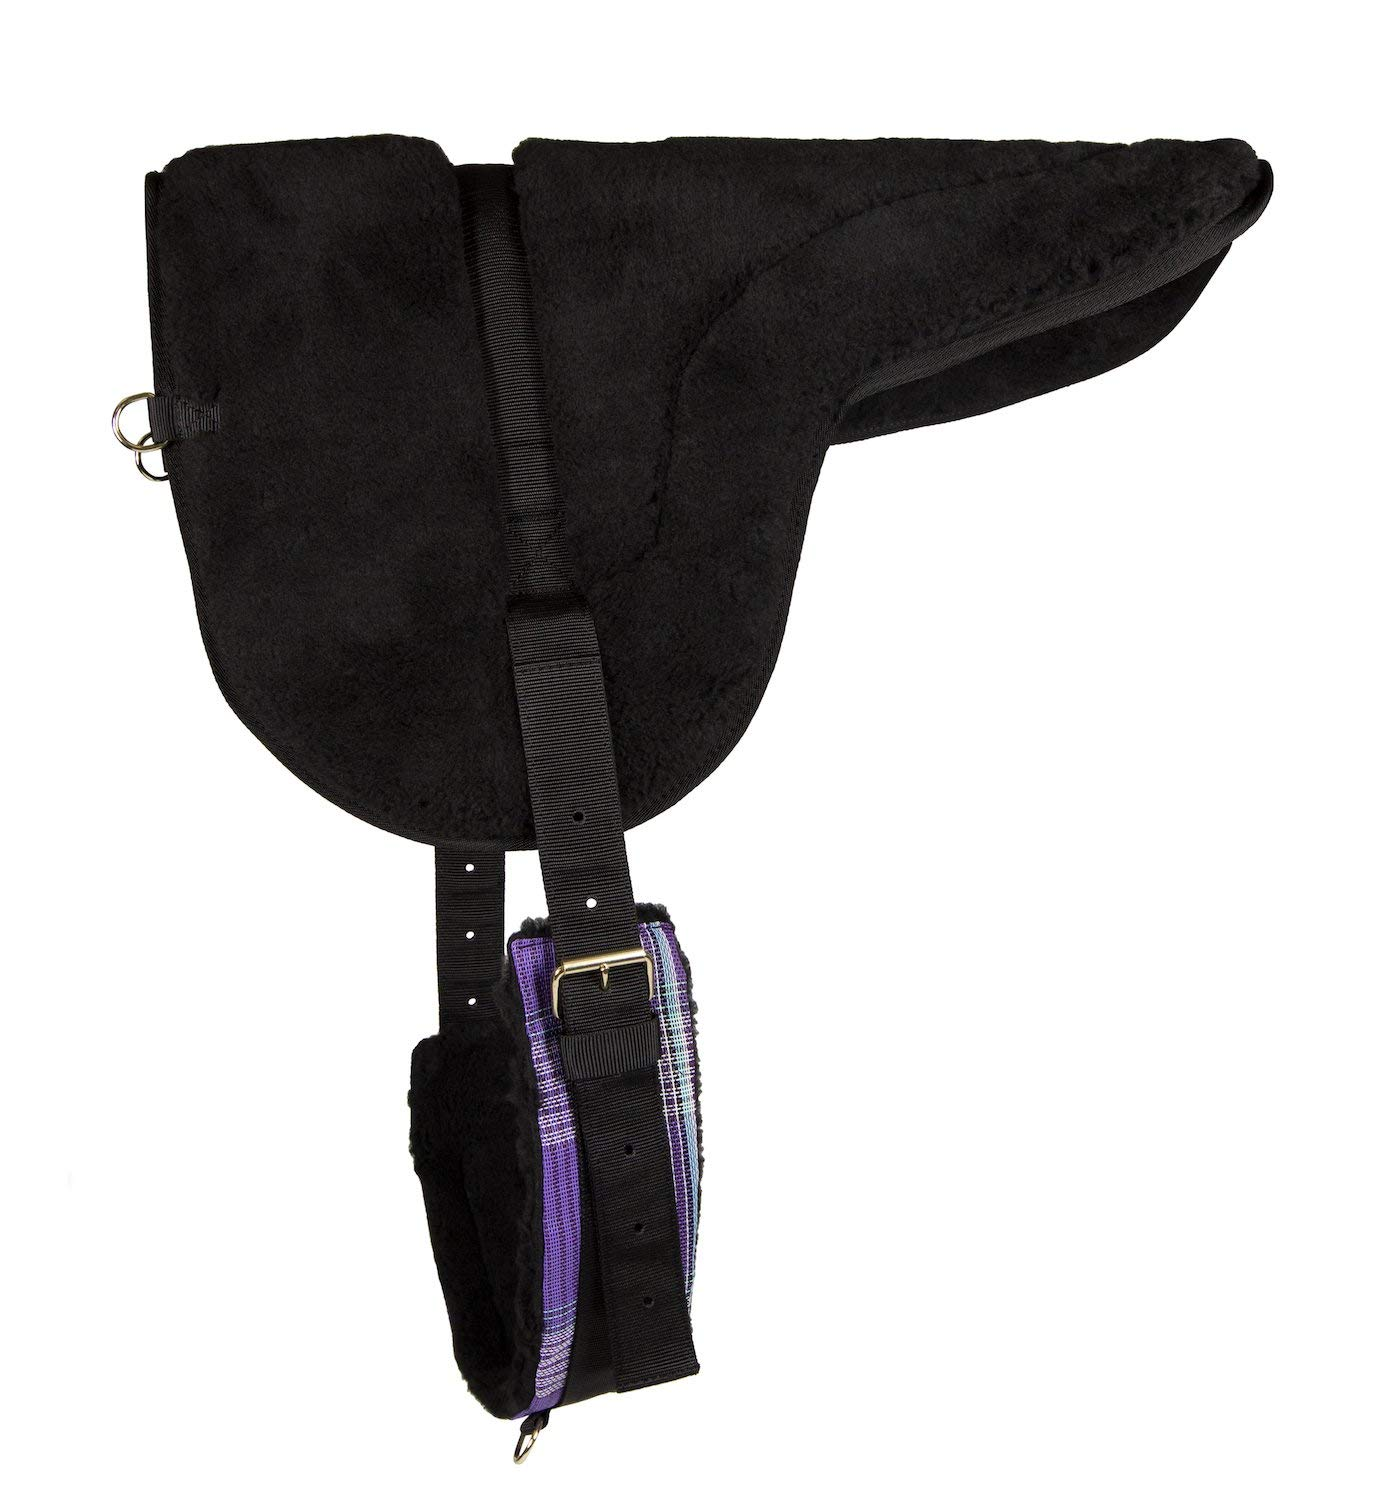 Kensington Fleece Bareback Pad - Heavy Duty Saddle Fleece with 1'' Thick Foam Center - Measures 29'' Long and 36'' Wide by kensington products